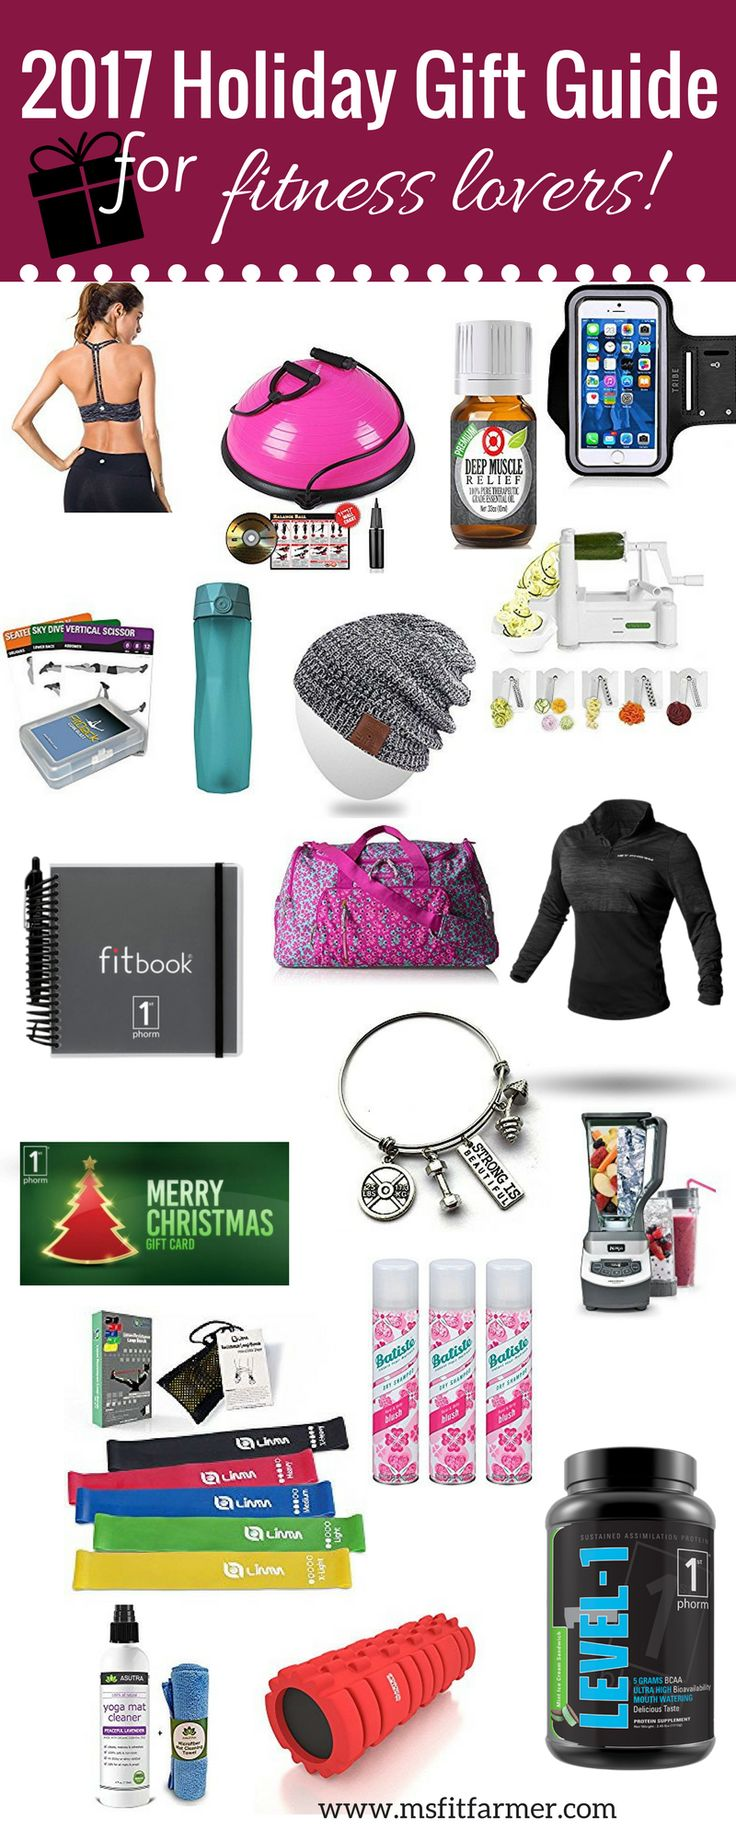 Holiday Gift Guide Fitness Lovers | Gift Ideas for Fitness | Gifts for Women | Christmas Presents | Holiday Shopping Ideas 2017 | More Fitness, Health and Wellness at www.msfitfarmer.com